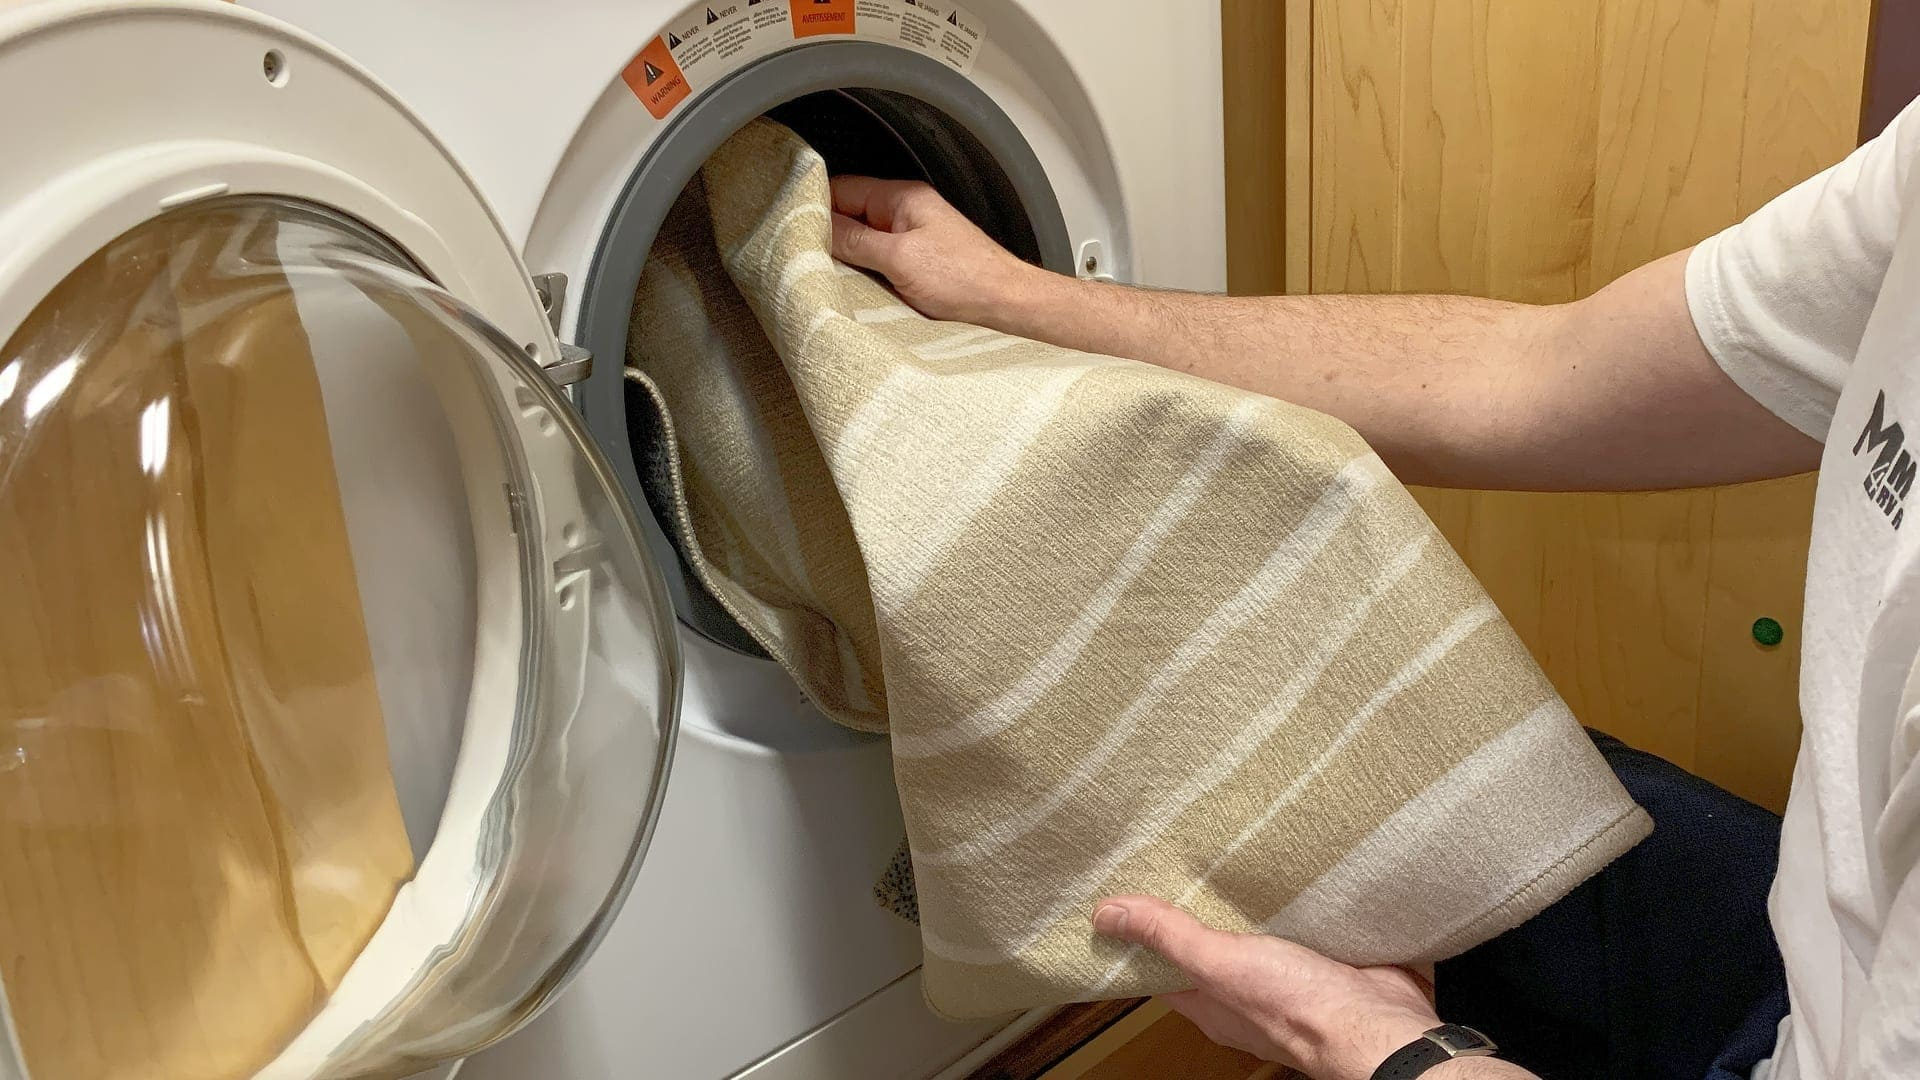 My Magic Carpet washable rugs even fit in an RV washing machine